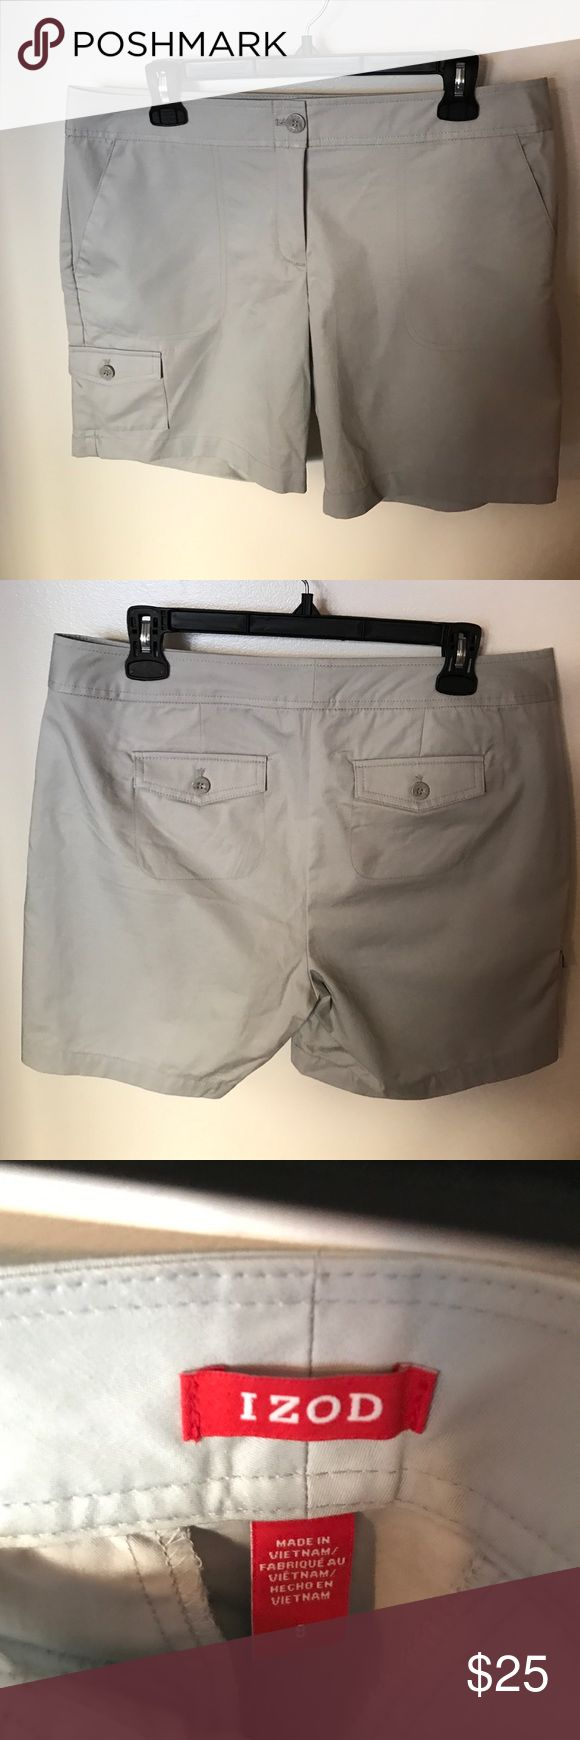 Women's grey shorts. Izod, size 8-Used Women's izod shorts, size 8. Only worn once. 100% cotton. Machine wash cold. Izod Shorts